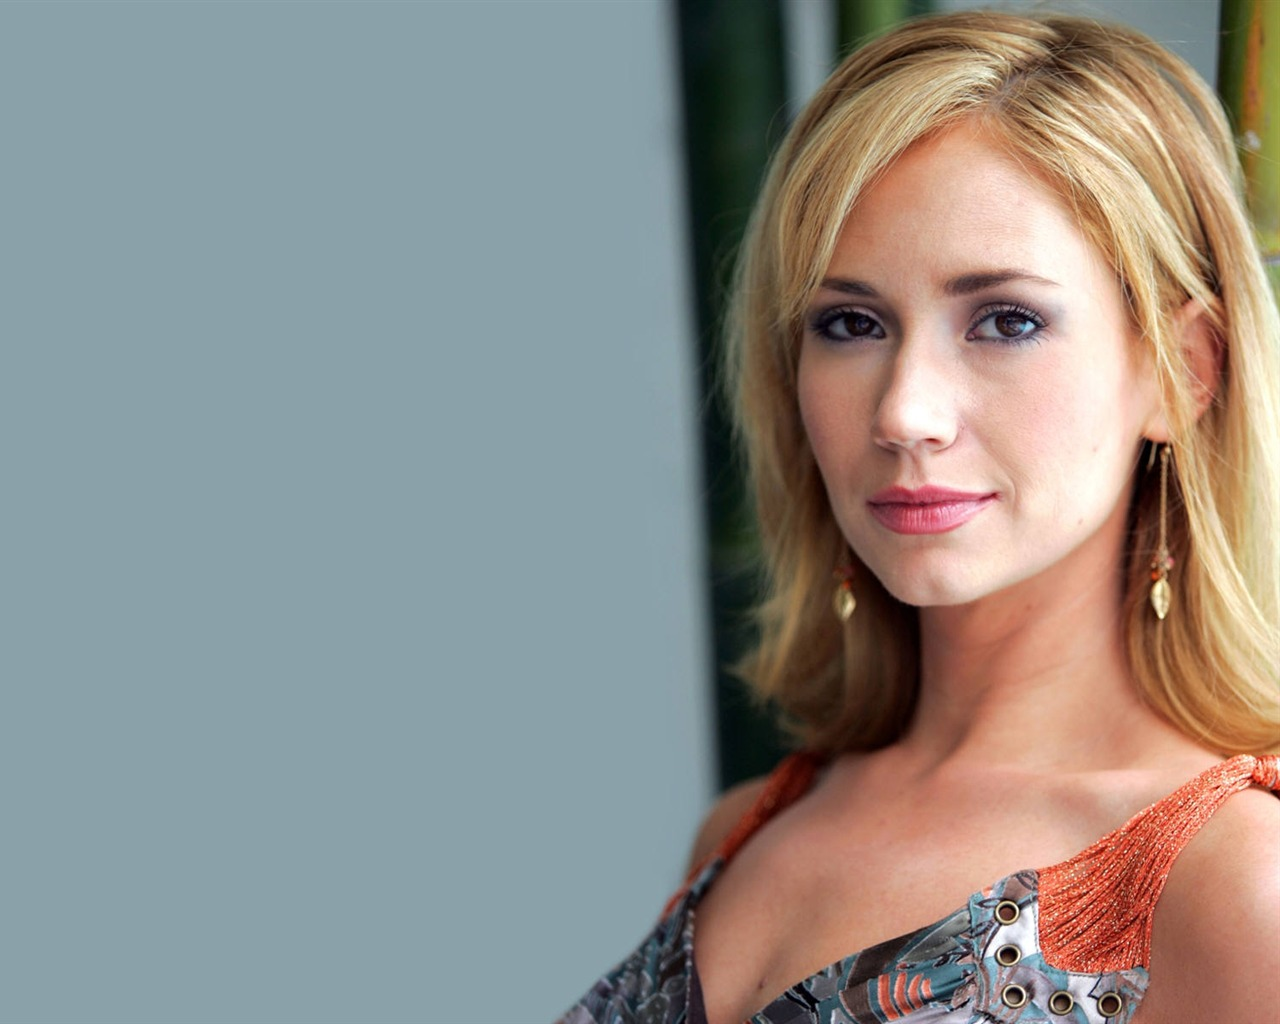 Ashley Jones #008 - 1280x1024 Wallpapers Pictures Photos Images